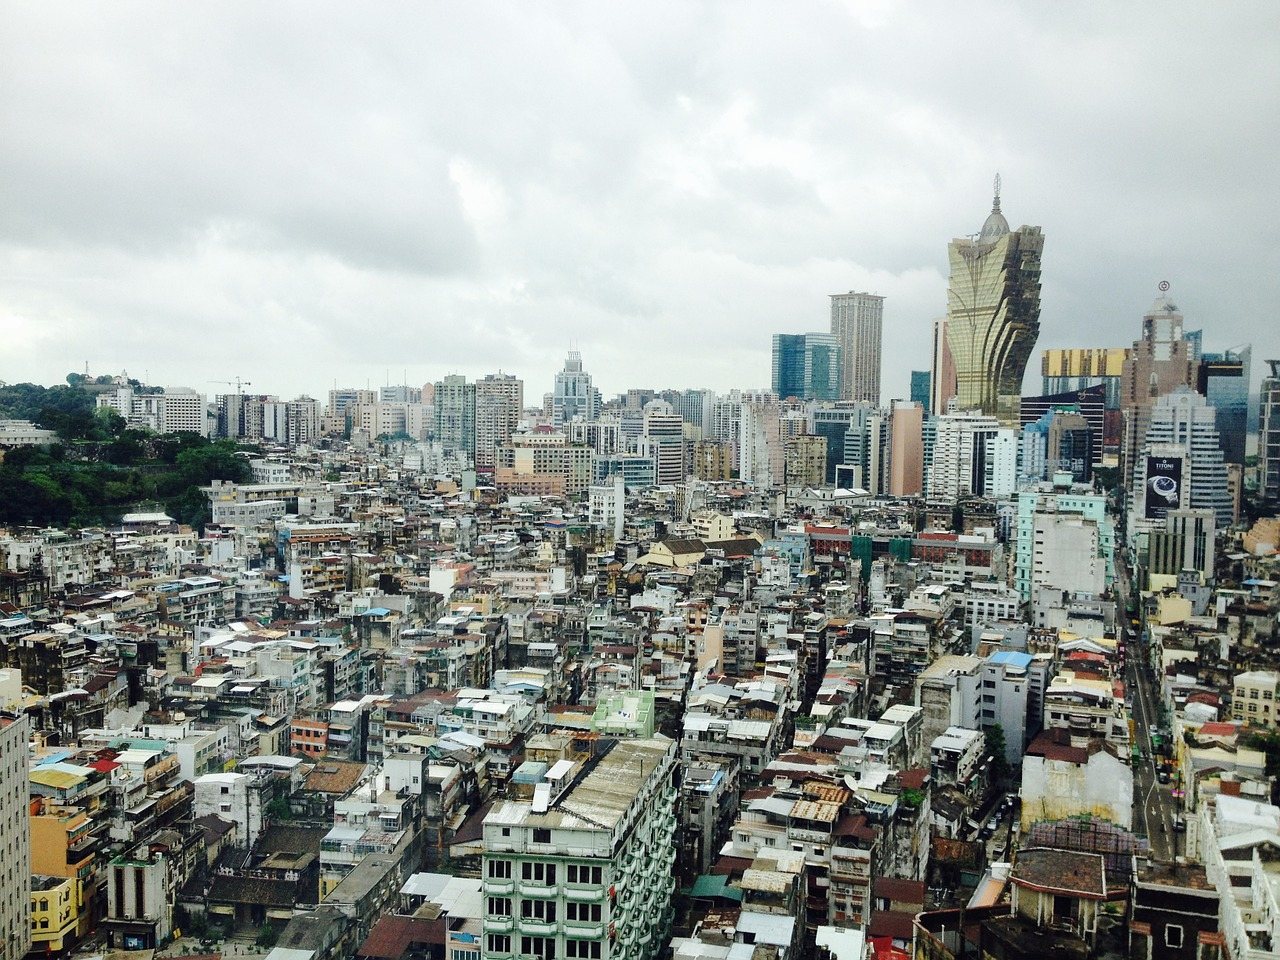 Macao Skyline by day